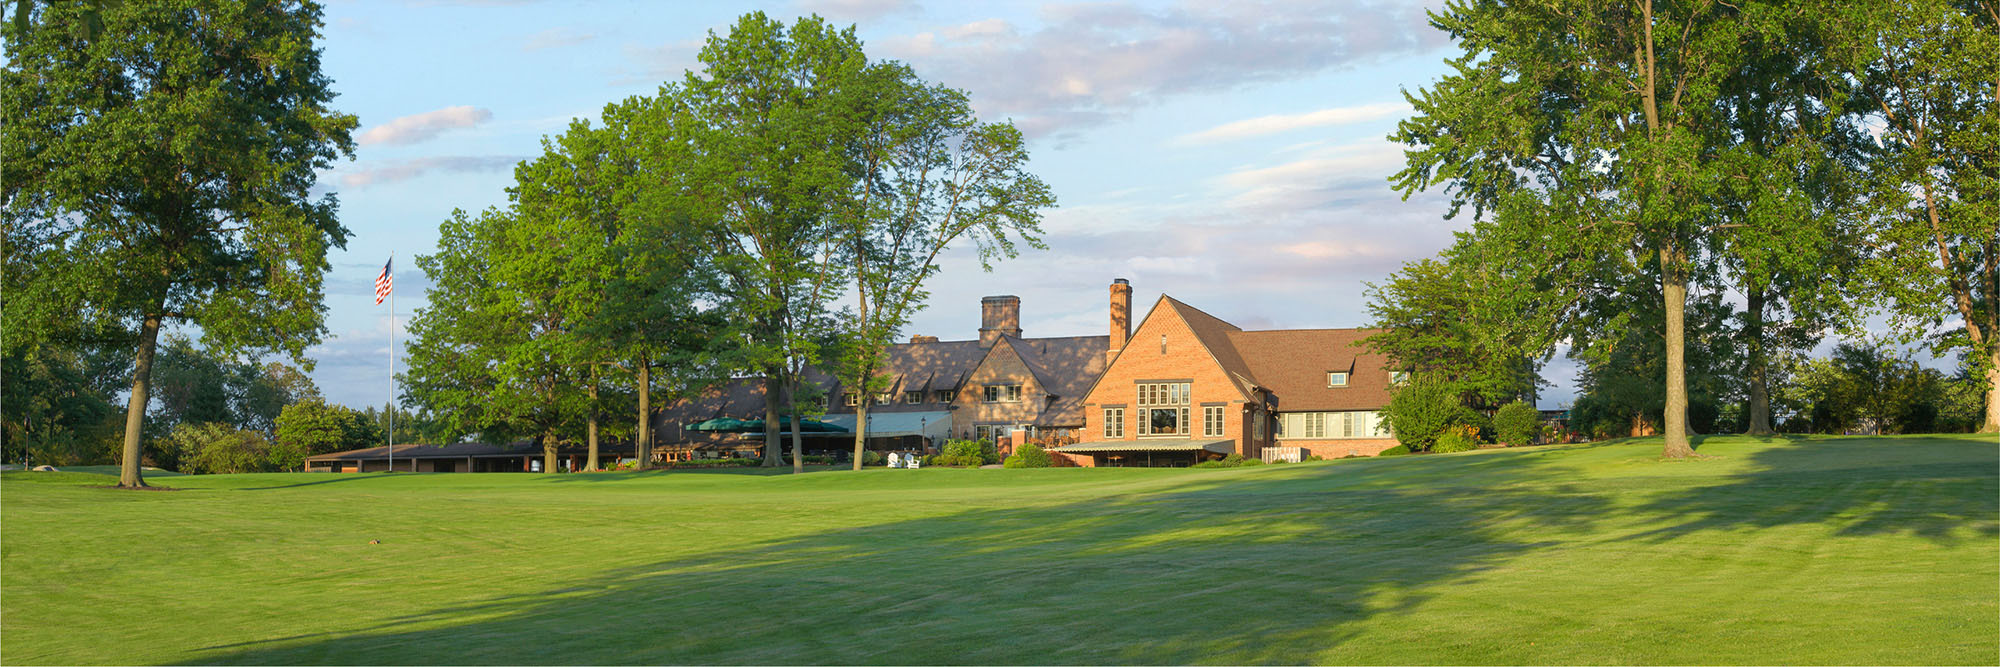 Golf Course Image - Canterbury Clubhouse